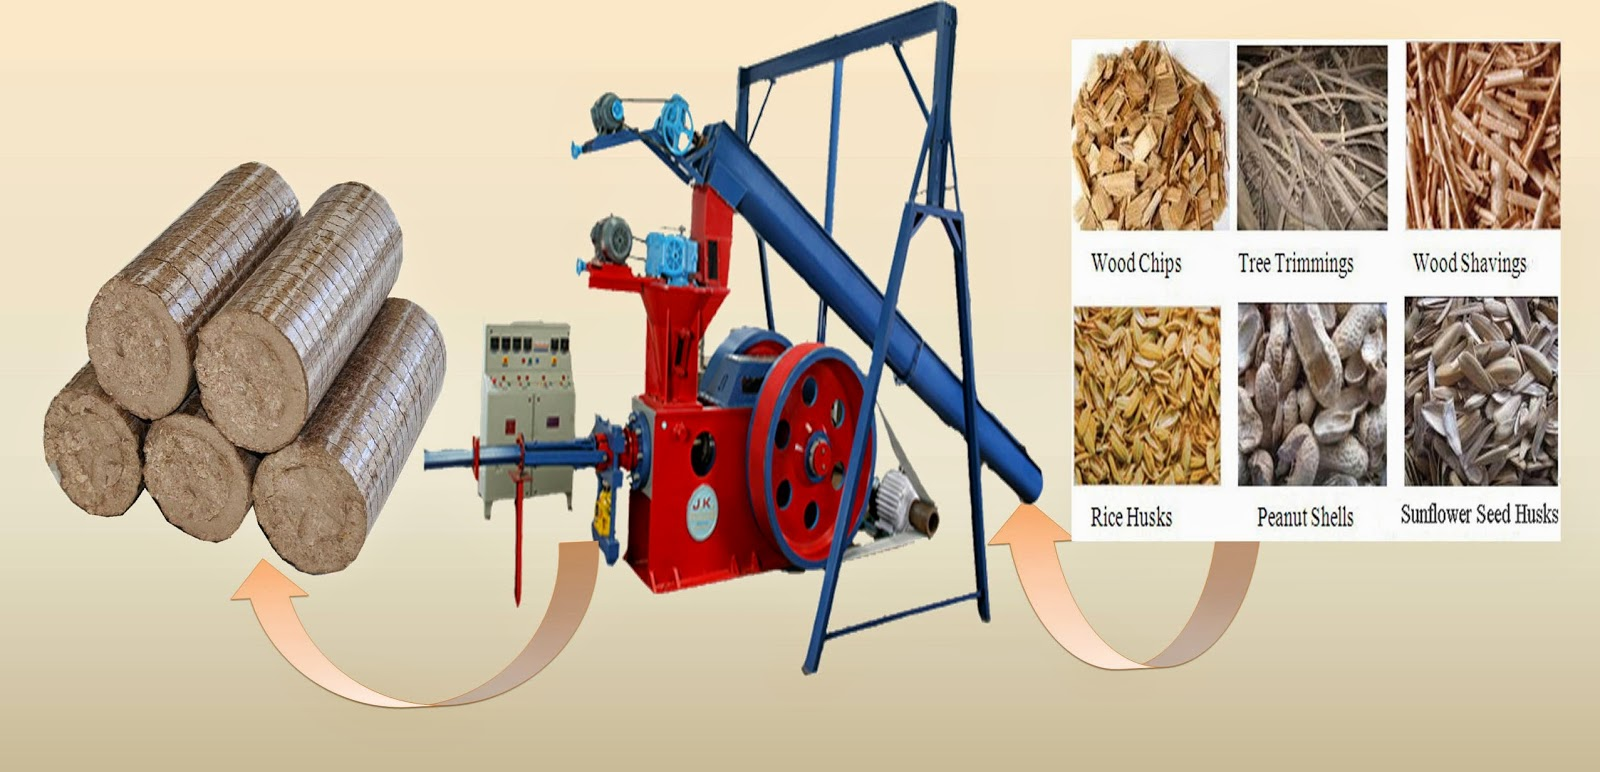 Briquetting Plant Machines